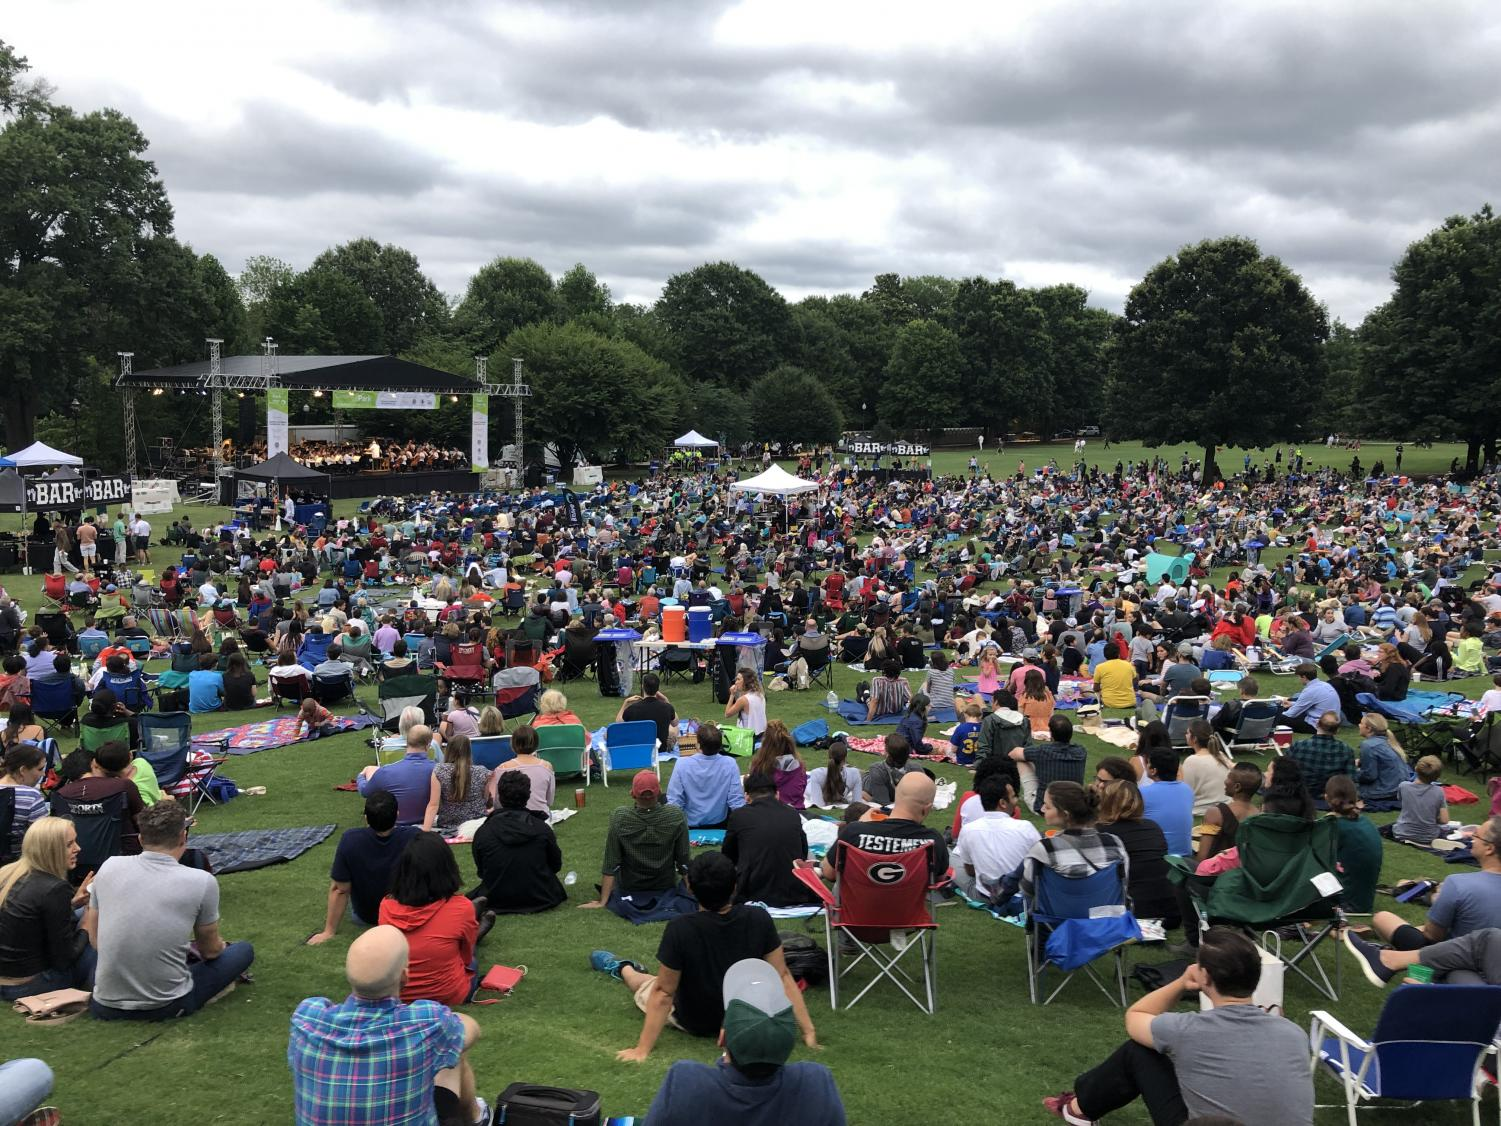 The Atlanta Symphony Orchestra performs on Piedmont Park's Oak Hill while a large crowd of listeners enjoy Tchaikovsky's Fifth Symphony.  Concerts are one of the many PPC sponsored community events that take place at the park throughout the year.